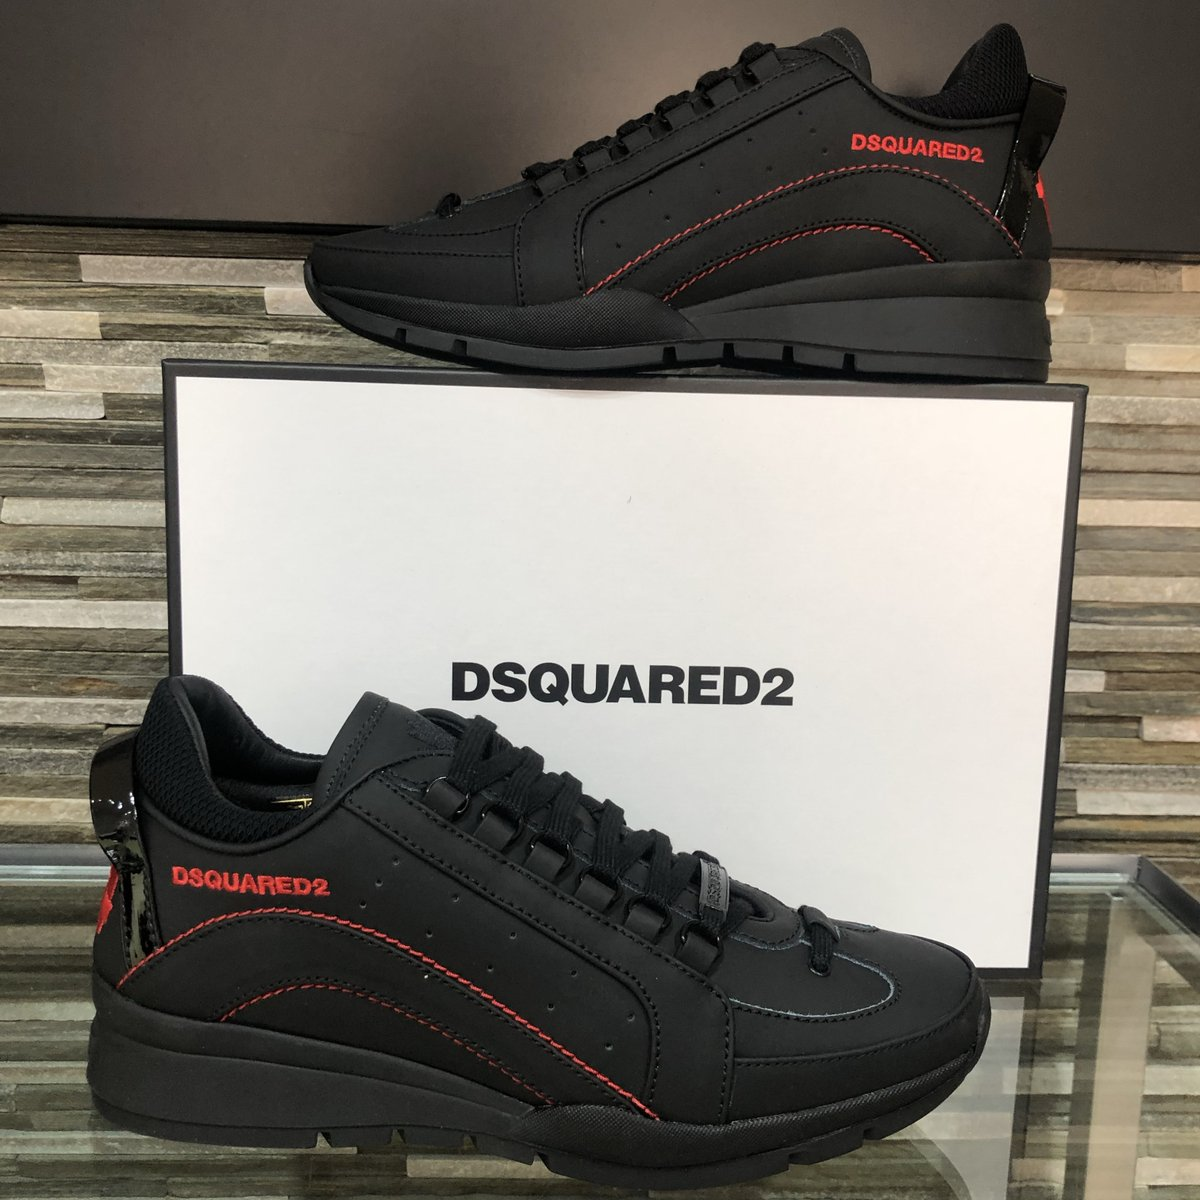 New in men's Dsquared2 Trainers now in store . . . . #mensfashion #dsquared2 #trainers #new #aw20pic.twitter.com/wuNG7yHfv1